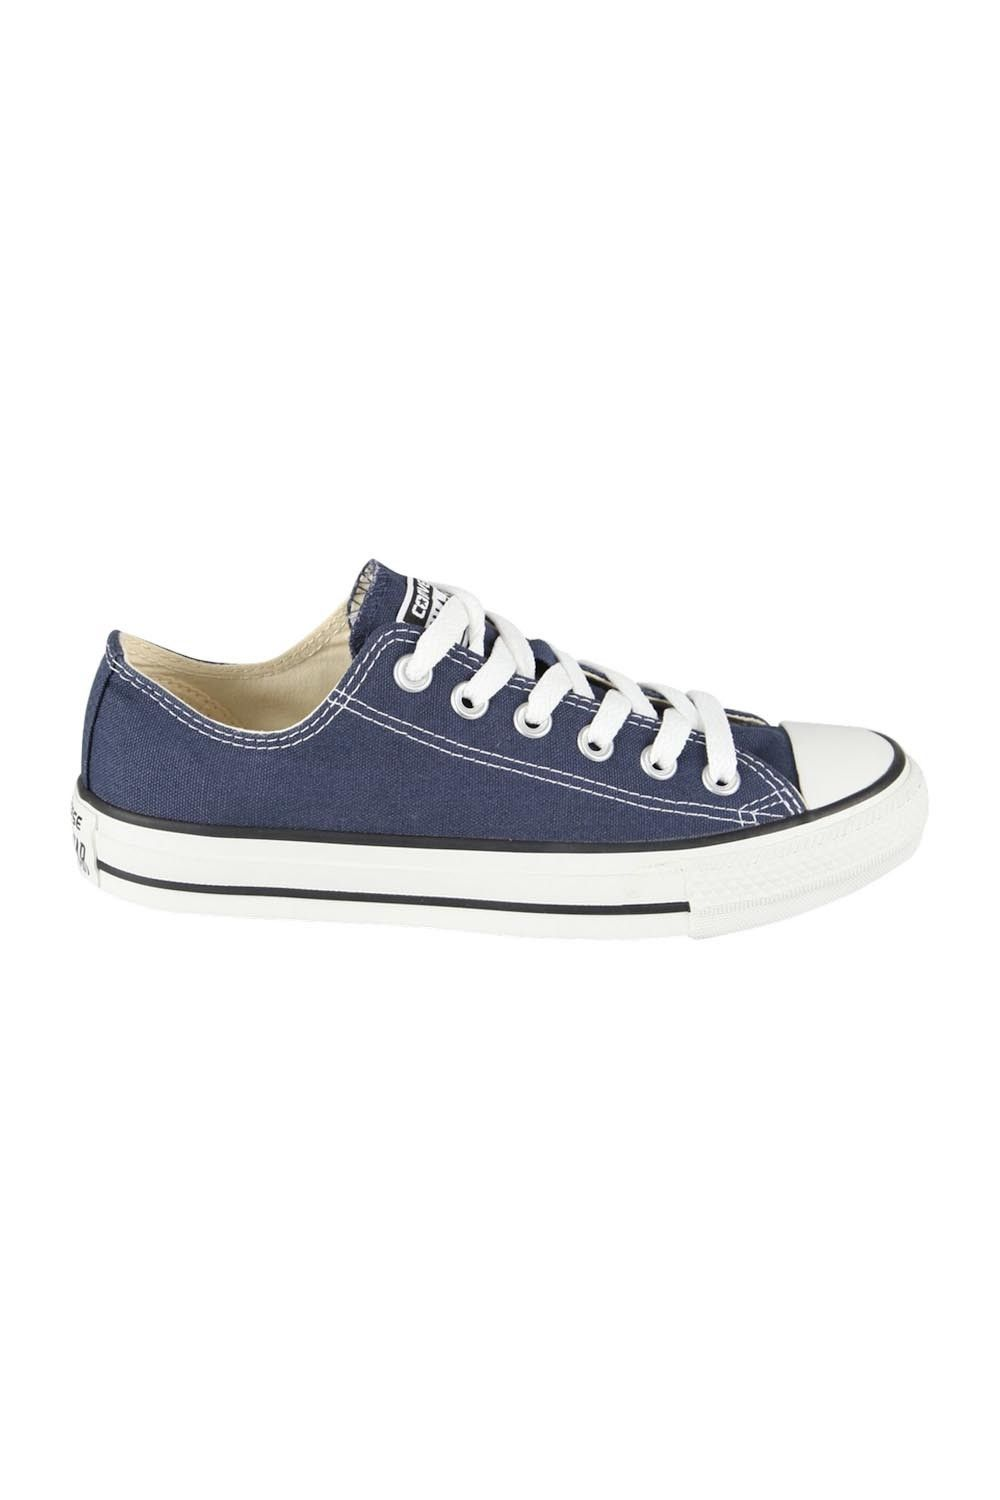 Converse All Star Ox My Van Is On: Chaussures et Sacs